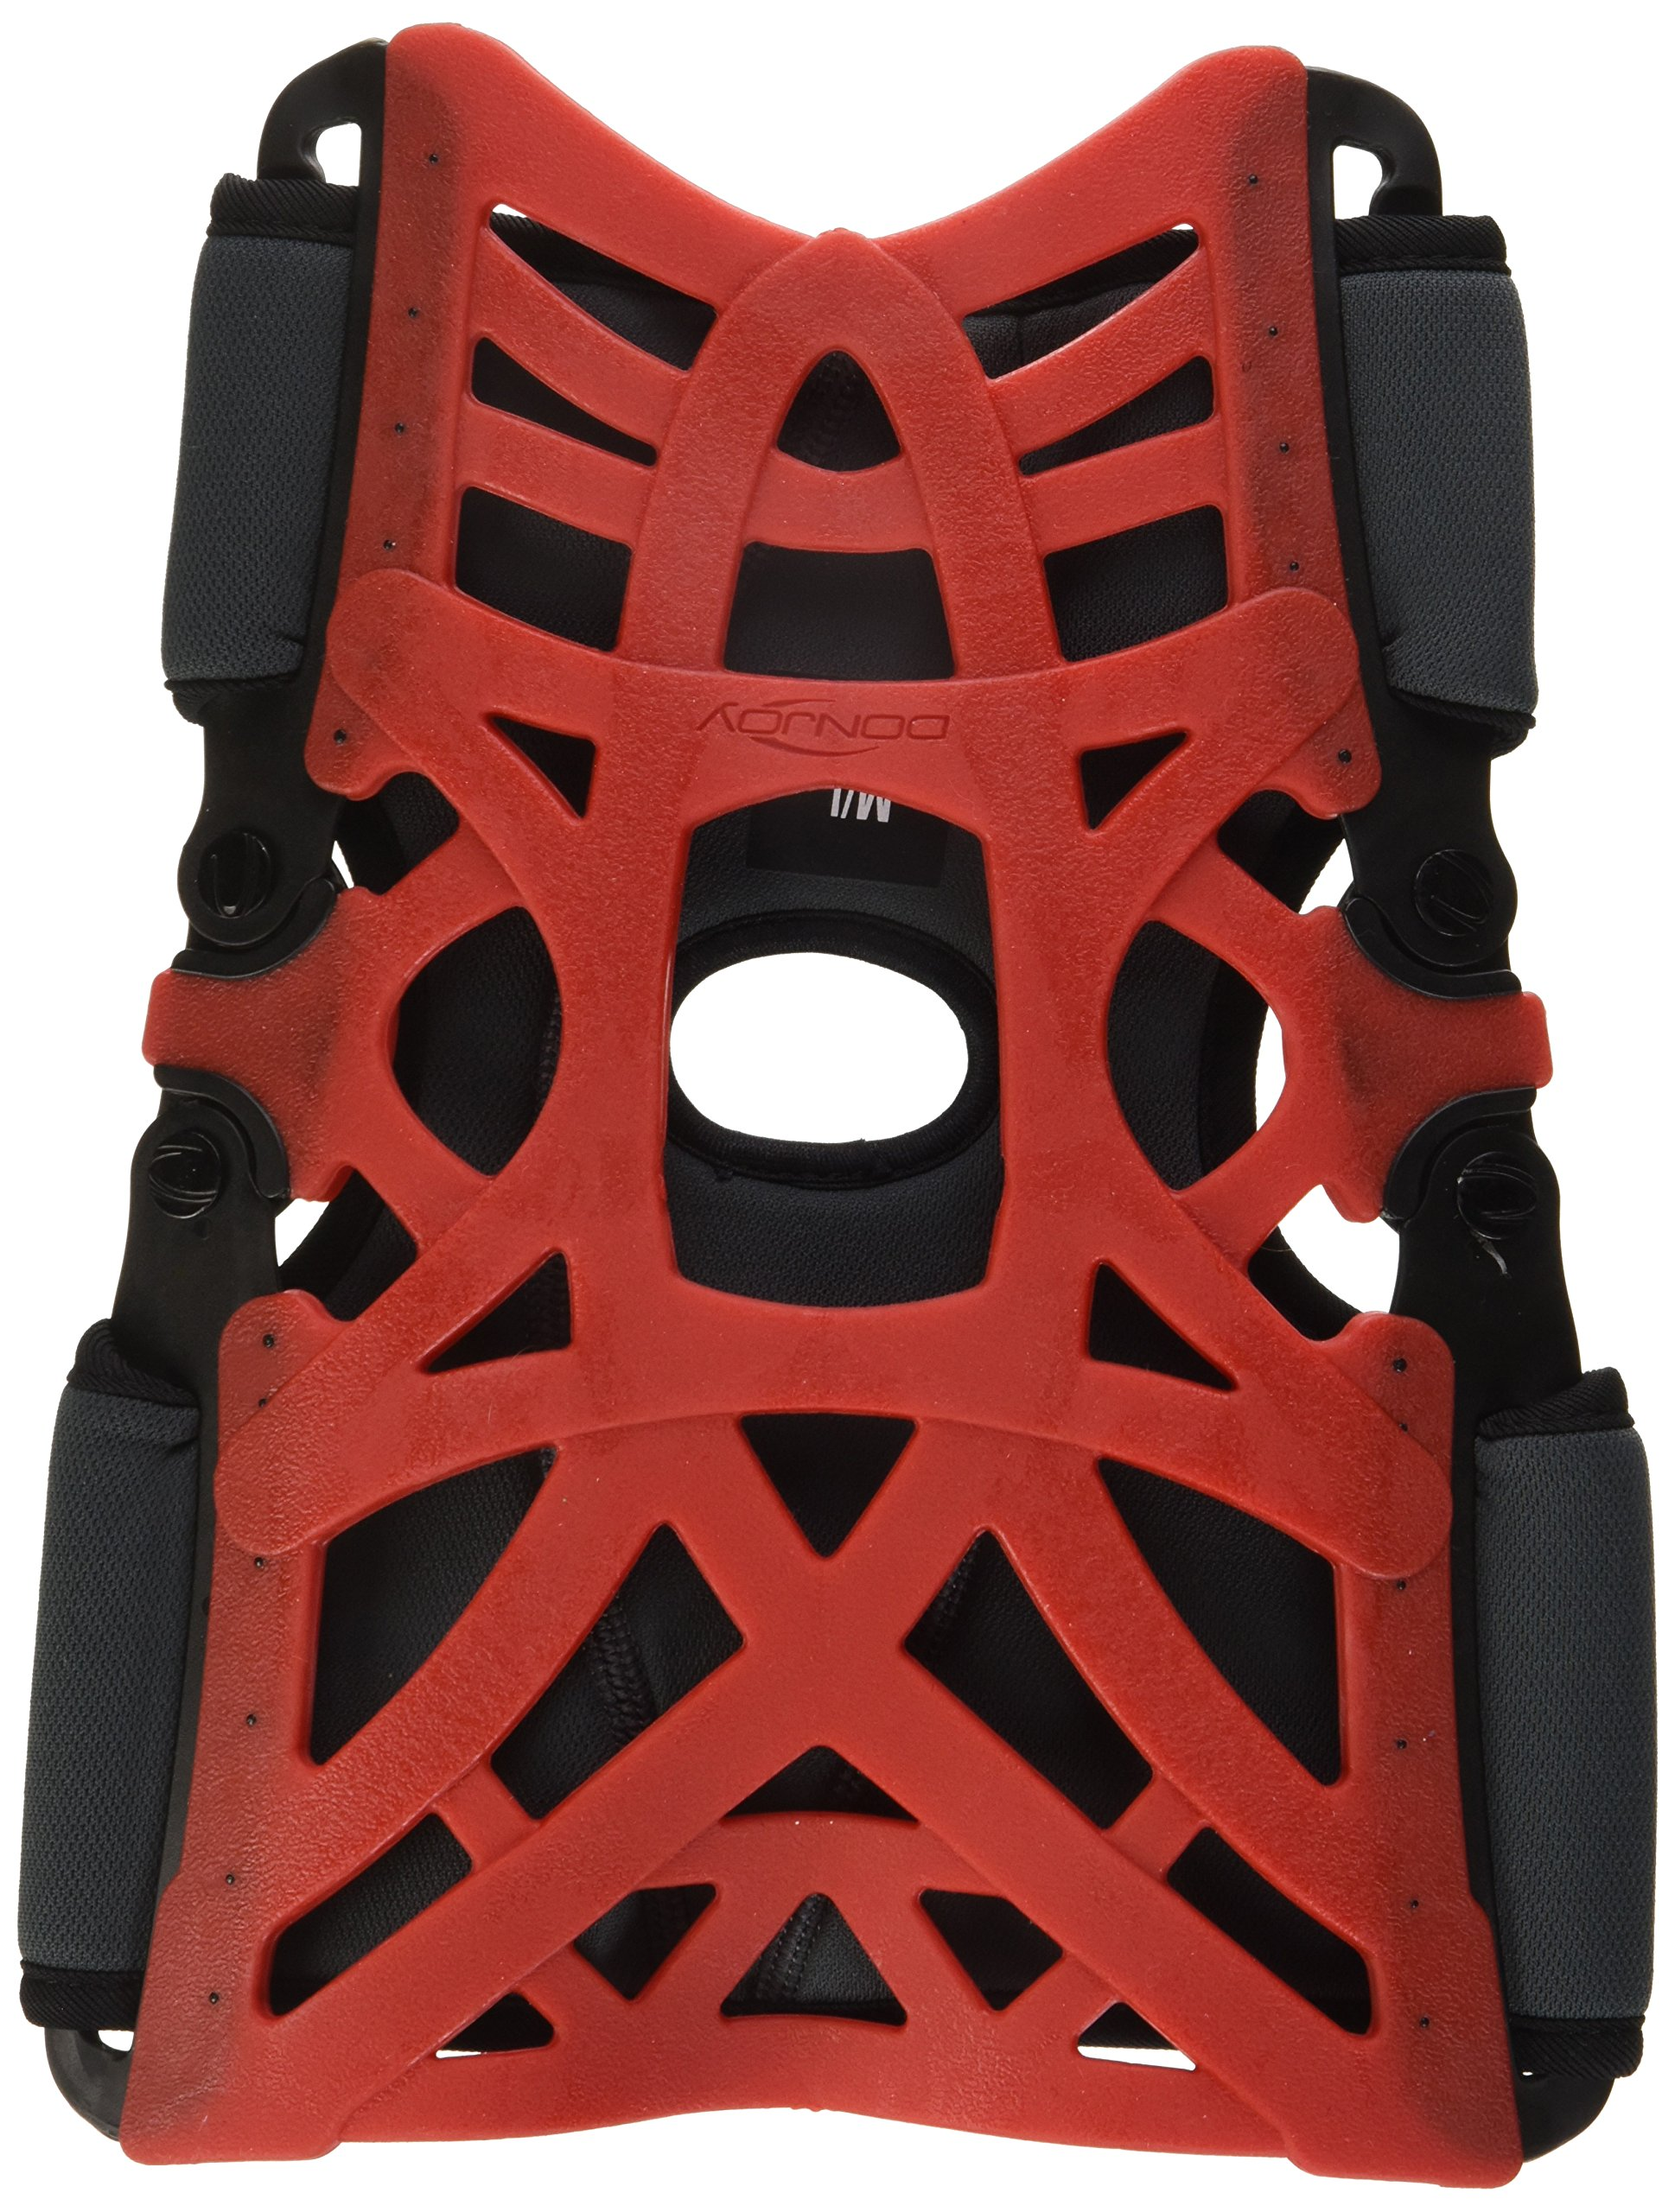 DonJoy Reaction Web Knee Support Brace with Compression Undersleeve: Red, Medium/Large by DonJoy